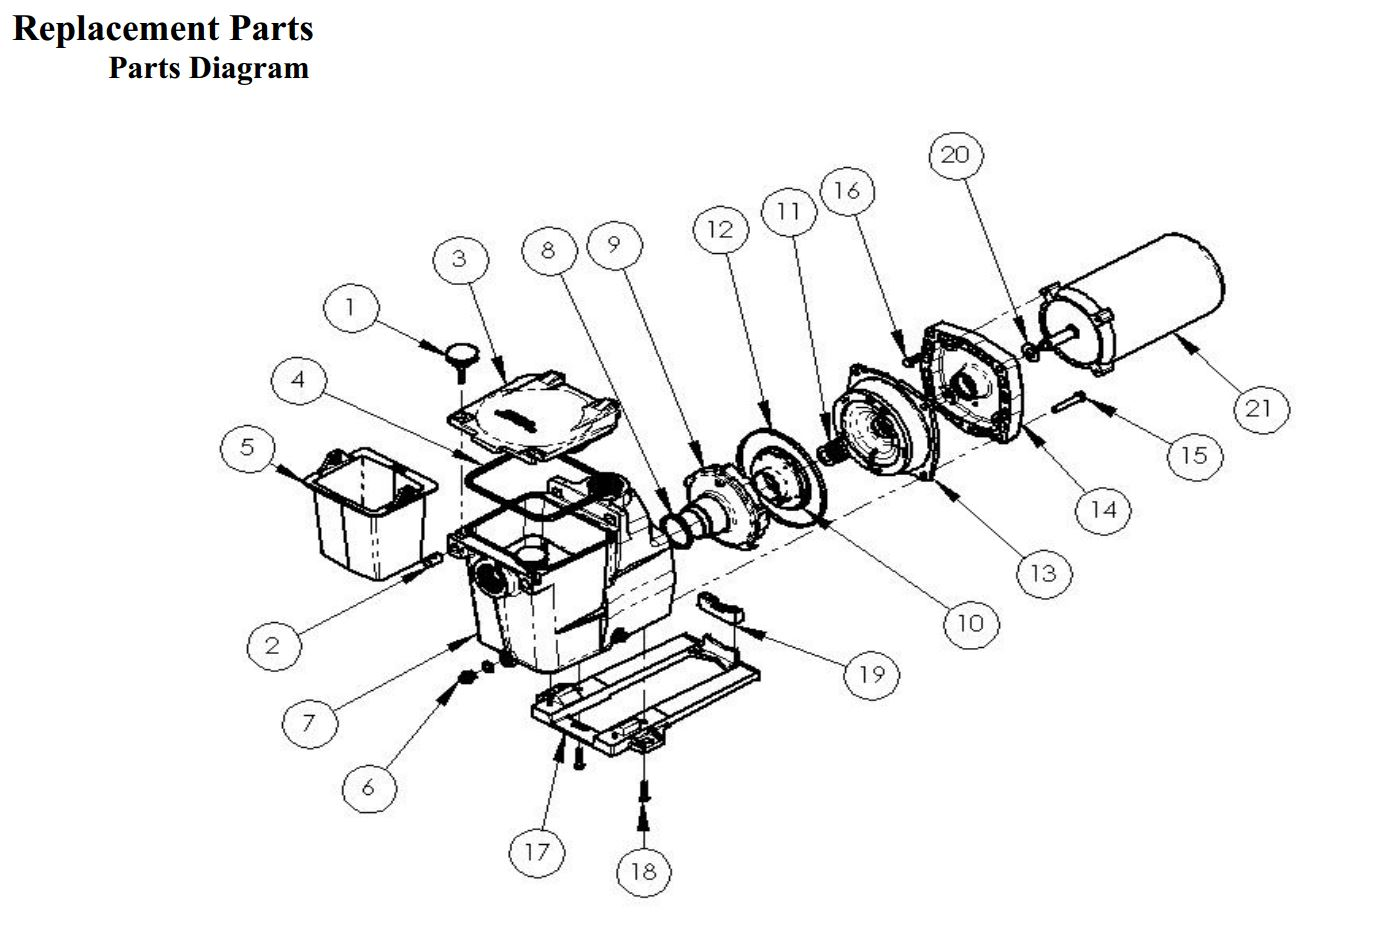 Hayward_Pump_ReplacementParts_WireDiagram._V359521762_ amazon com hayward sp2605x7 super pump 75 hp max rated single hayward pool pump wiring diagram at gsmx.co